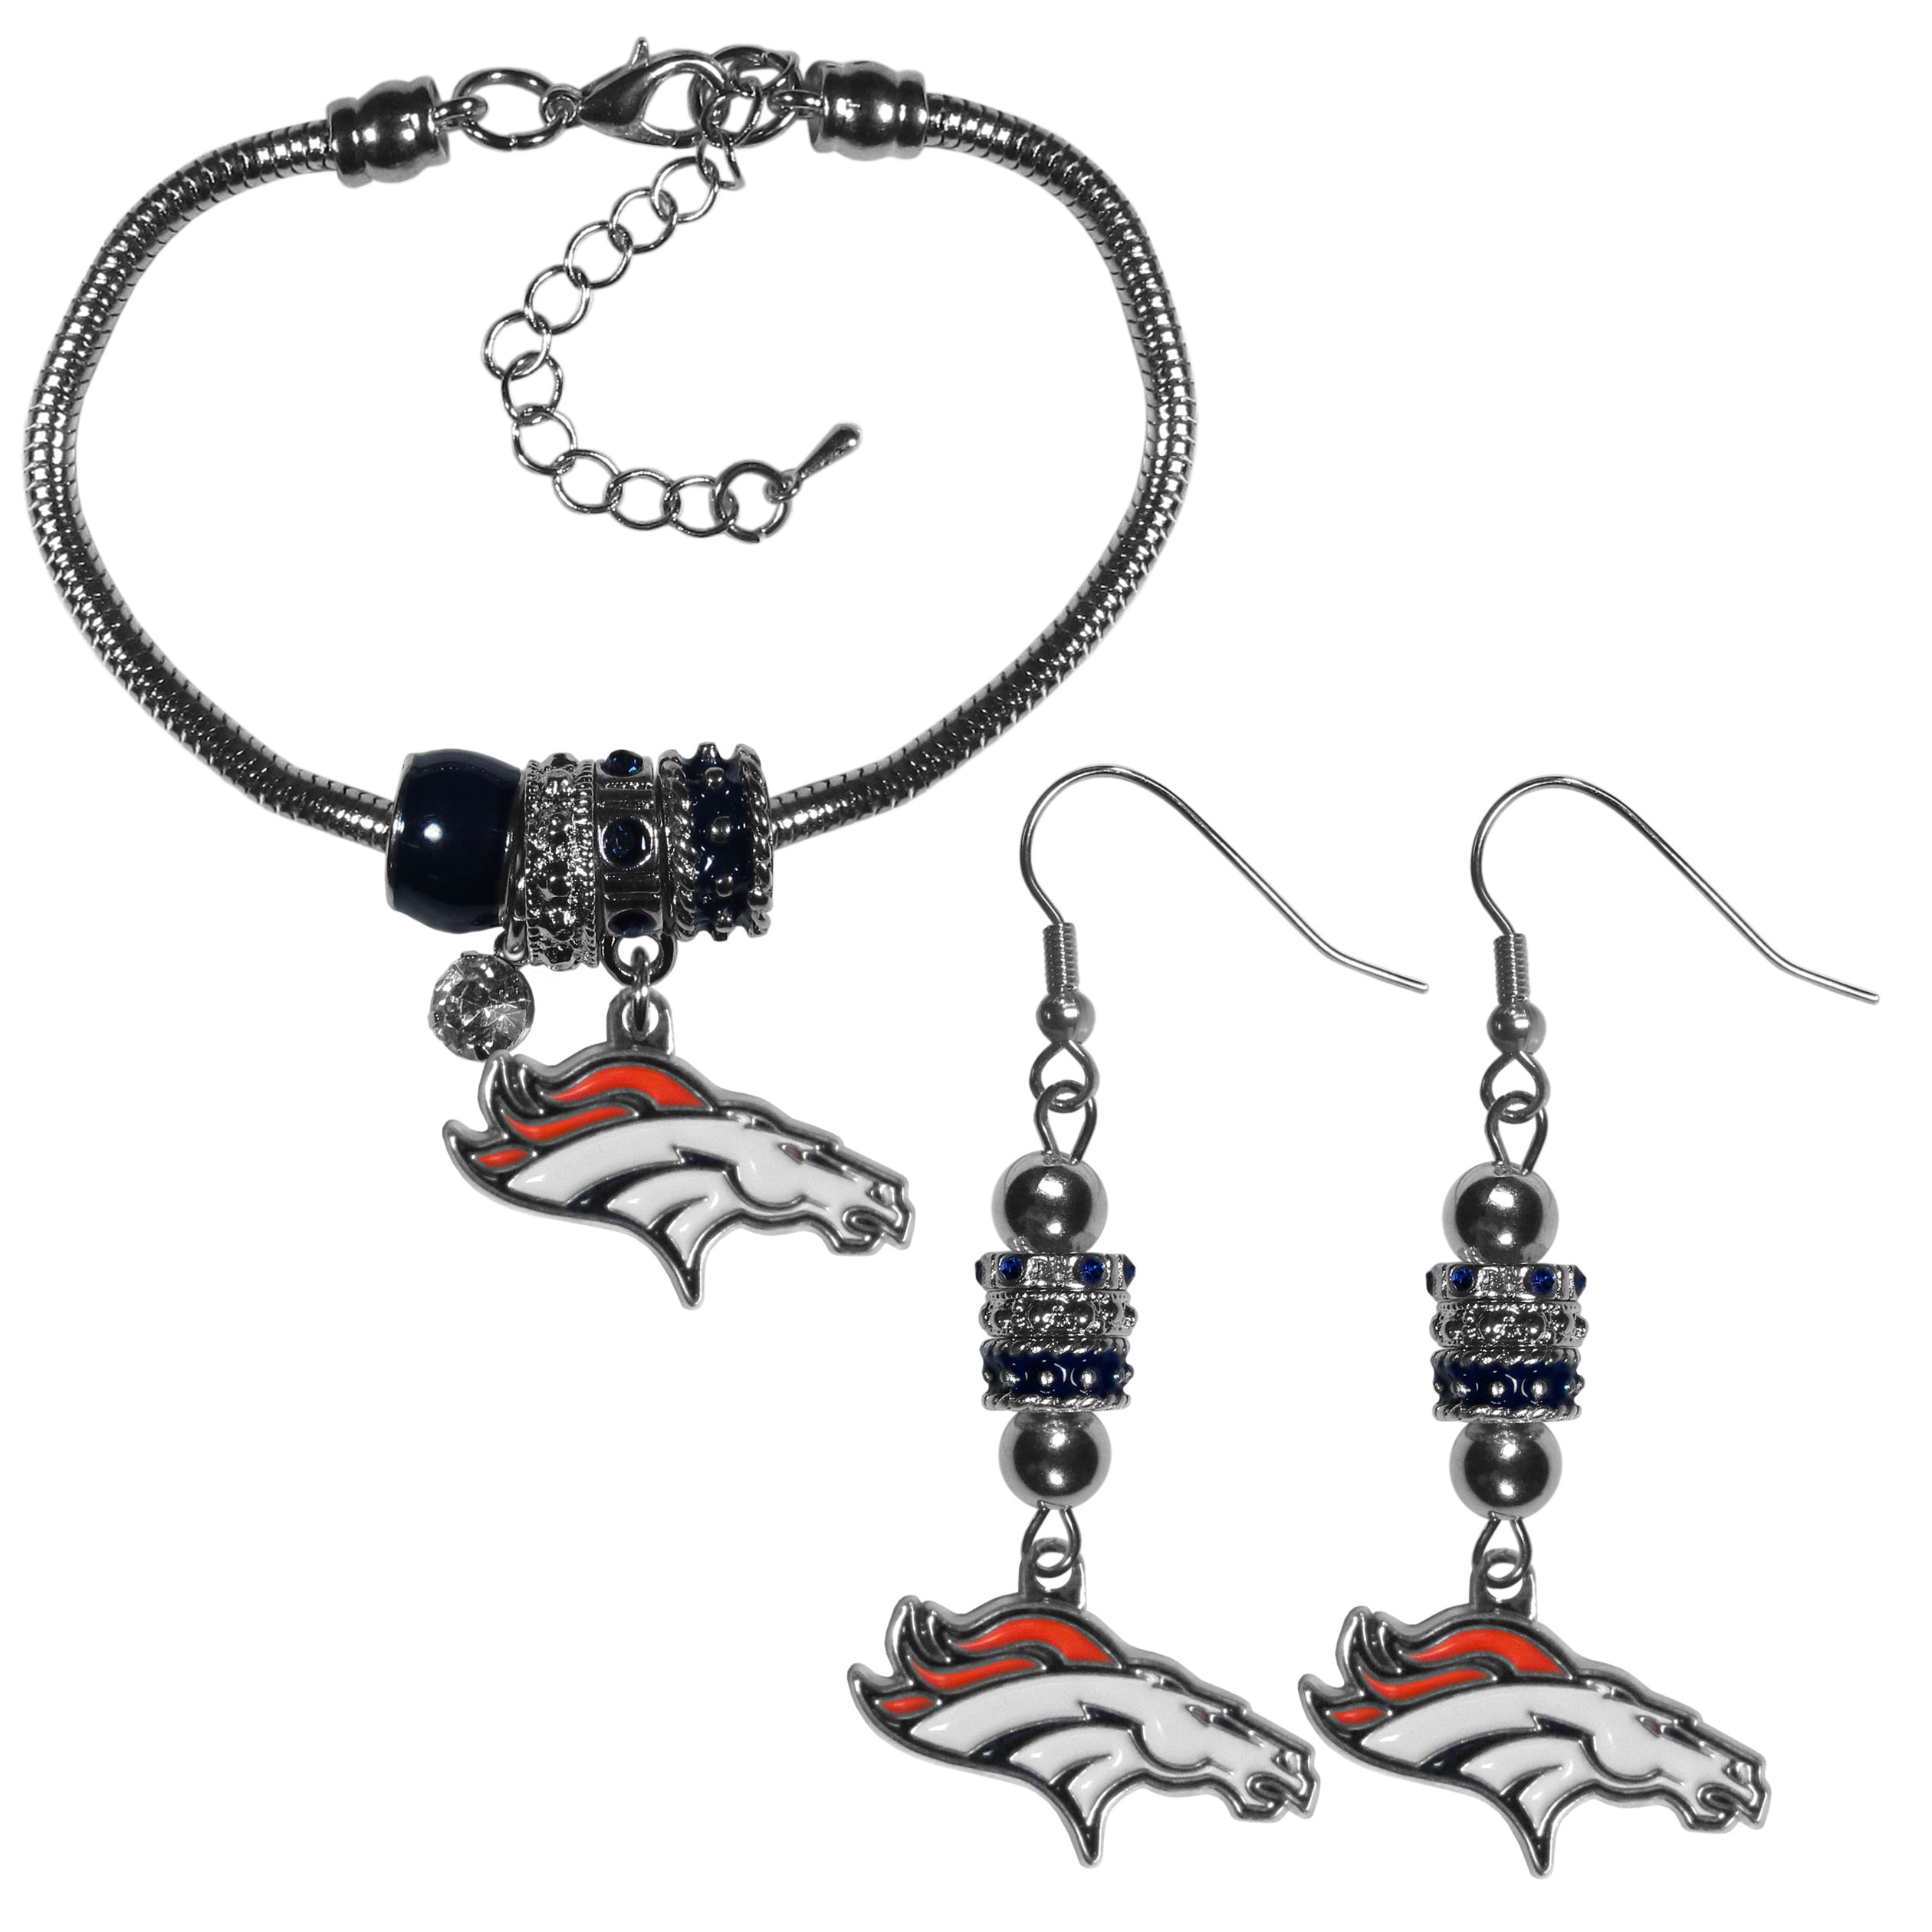 Denver Broncos Euro Bead Earrings and Bracelet Set - We combine the popular Euro bead style with your love of the Denver Broncos with this beautiful jewelry set that includes earrings and a matching bracelet. The stylish earrings feature hypoallergenic, nickel free fishhook posts and 3 team colored Euro beads and a metal team charm. The matching snake chain bracelet is 7.5 inches long with a 2 inch extender and 4 Euro beads with a rhinestone charm and team charm.